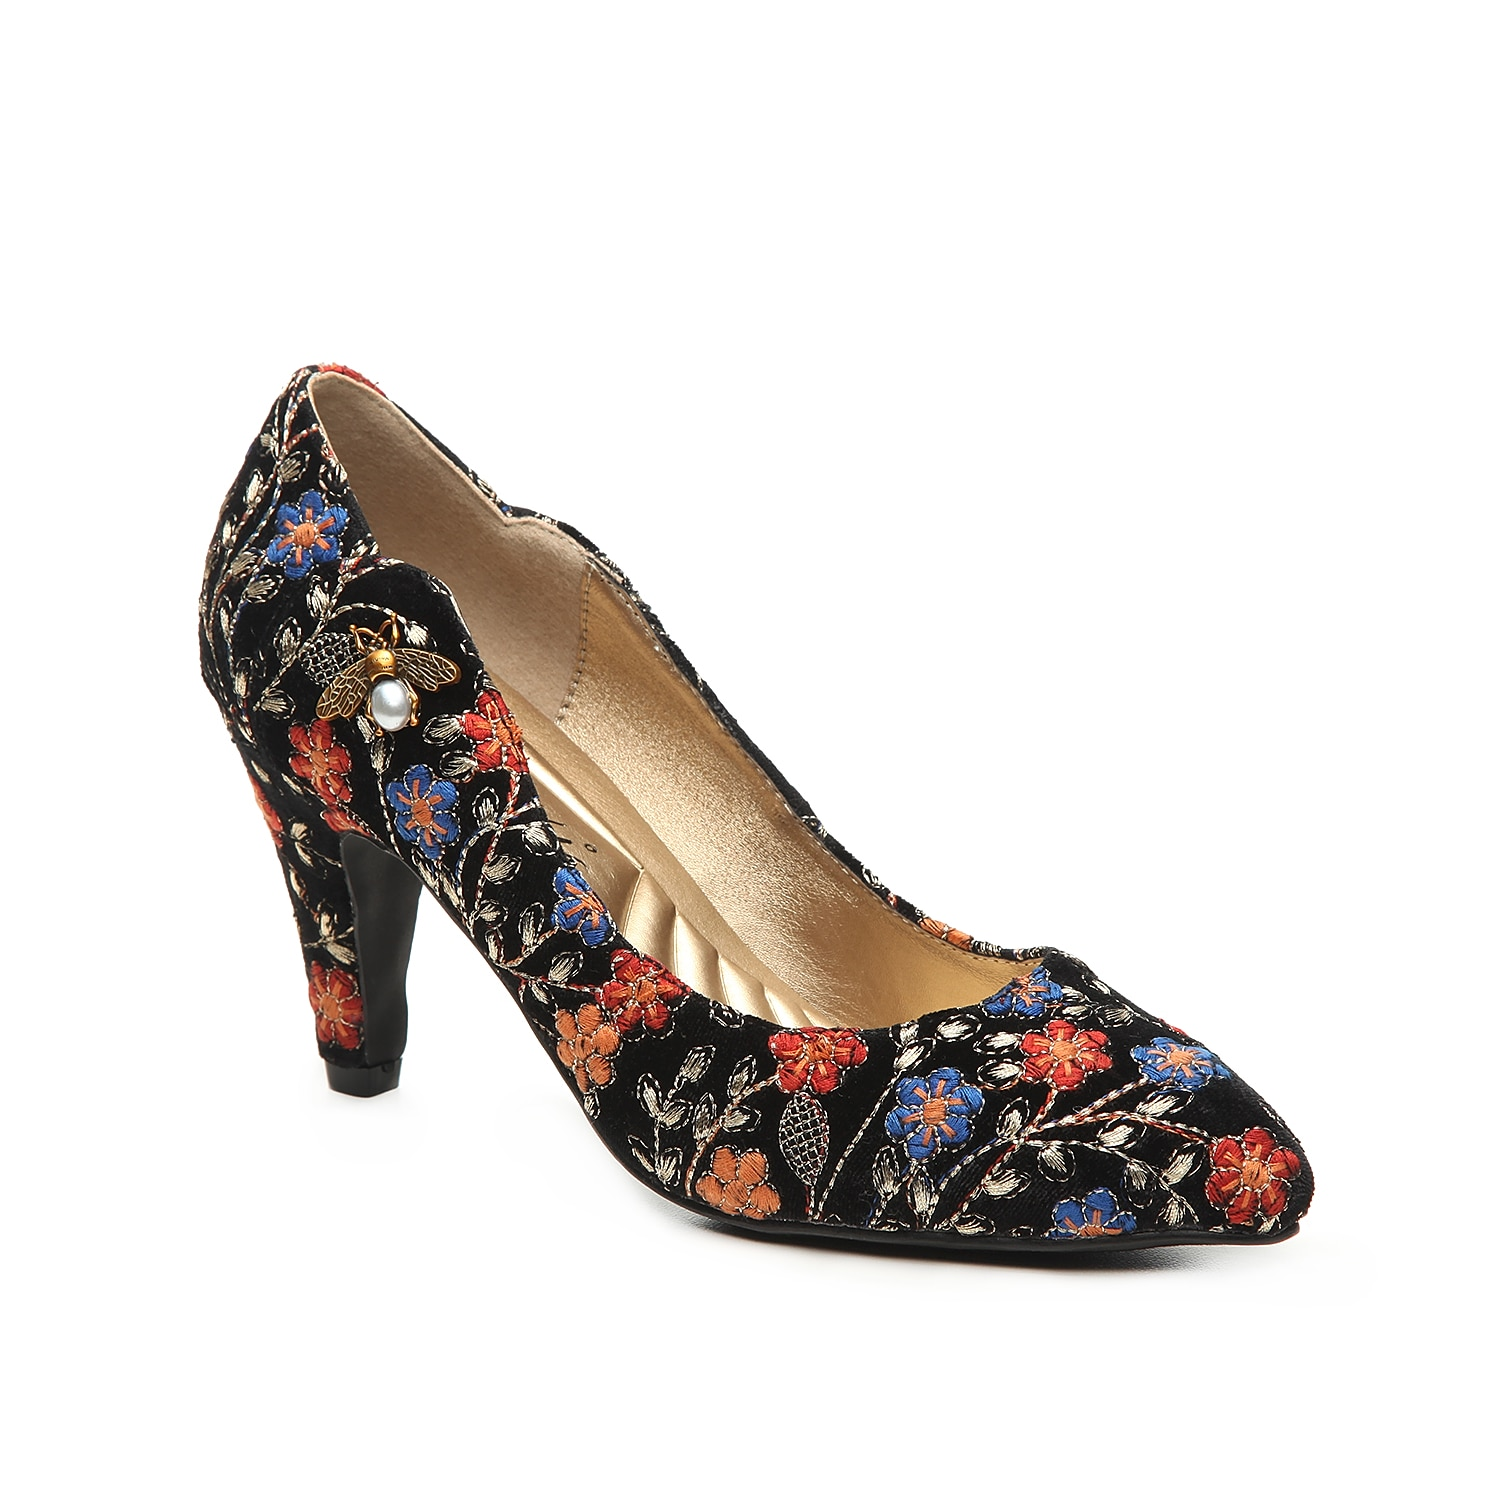 Add whimsical flair to your look with the Bea pump from Bellini. These heels feature a dainty bee embellishment for a charming finished for work or the weekend!